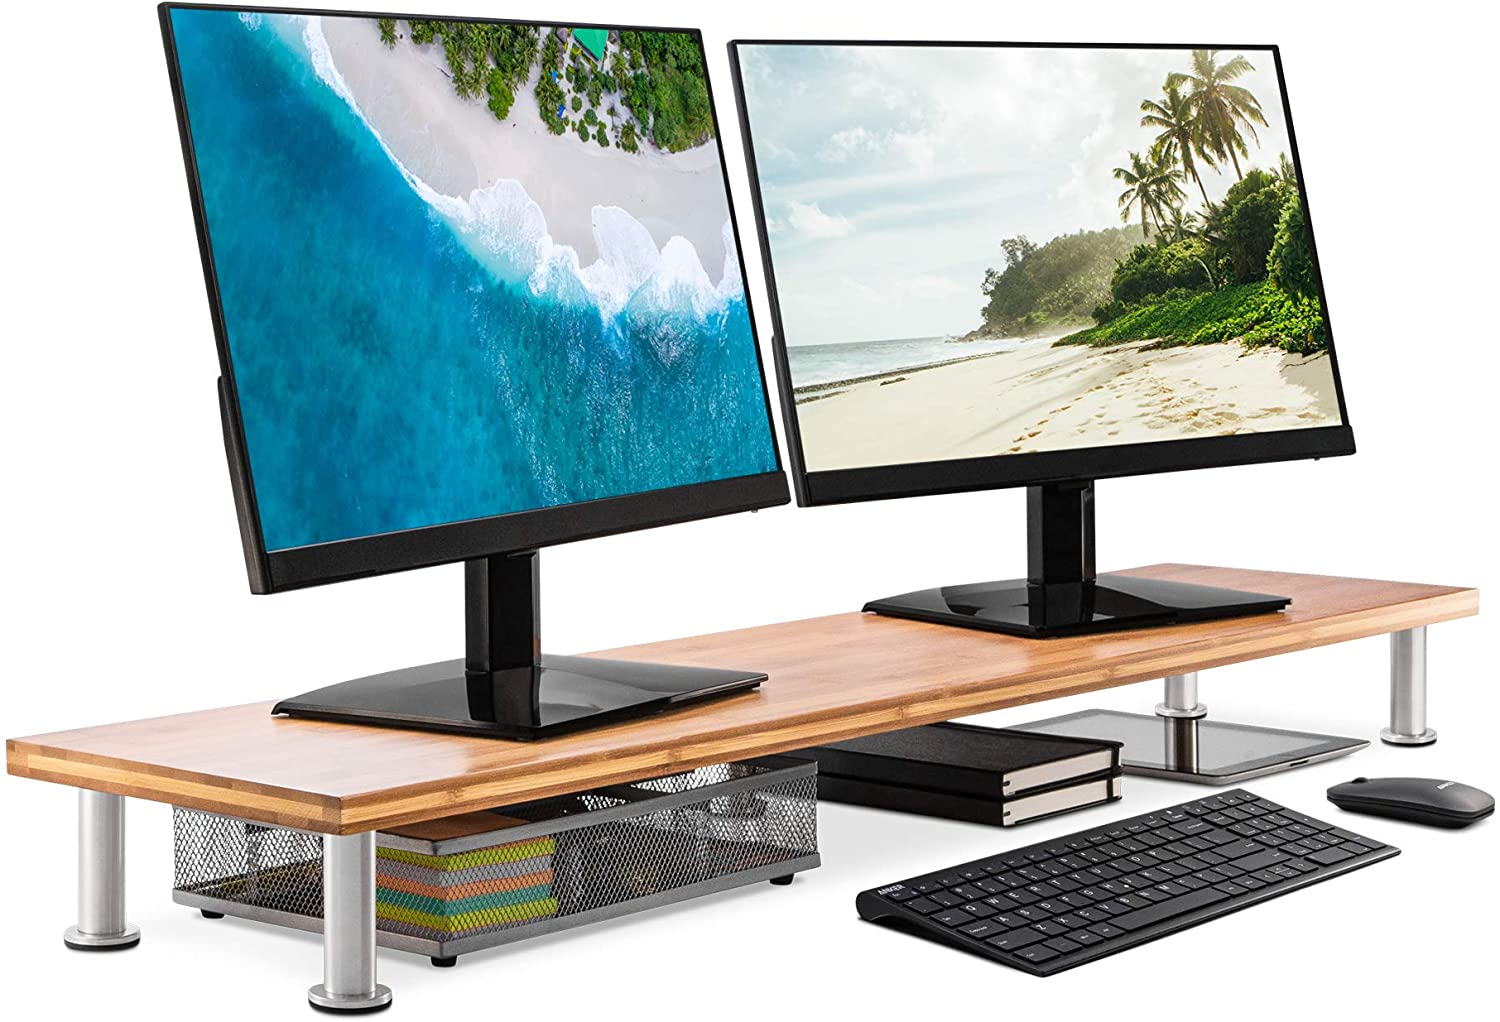 Large Dual Monitor Stand for Computer Screens, Bamboo Riser Supports Monitors, Printers, Laptops or TVs up to 100lbs, Perfect Shelf Organizer for Office Desk Accessories & TV Stands, Natural